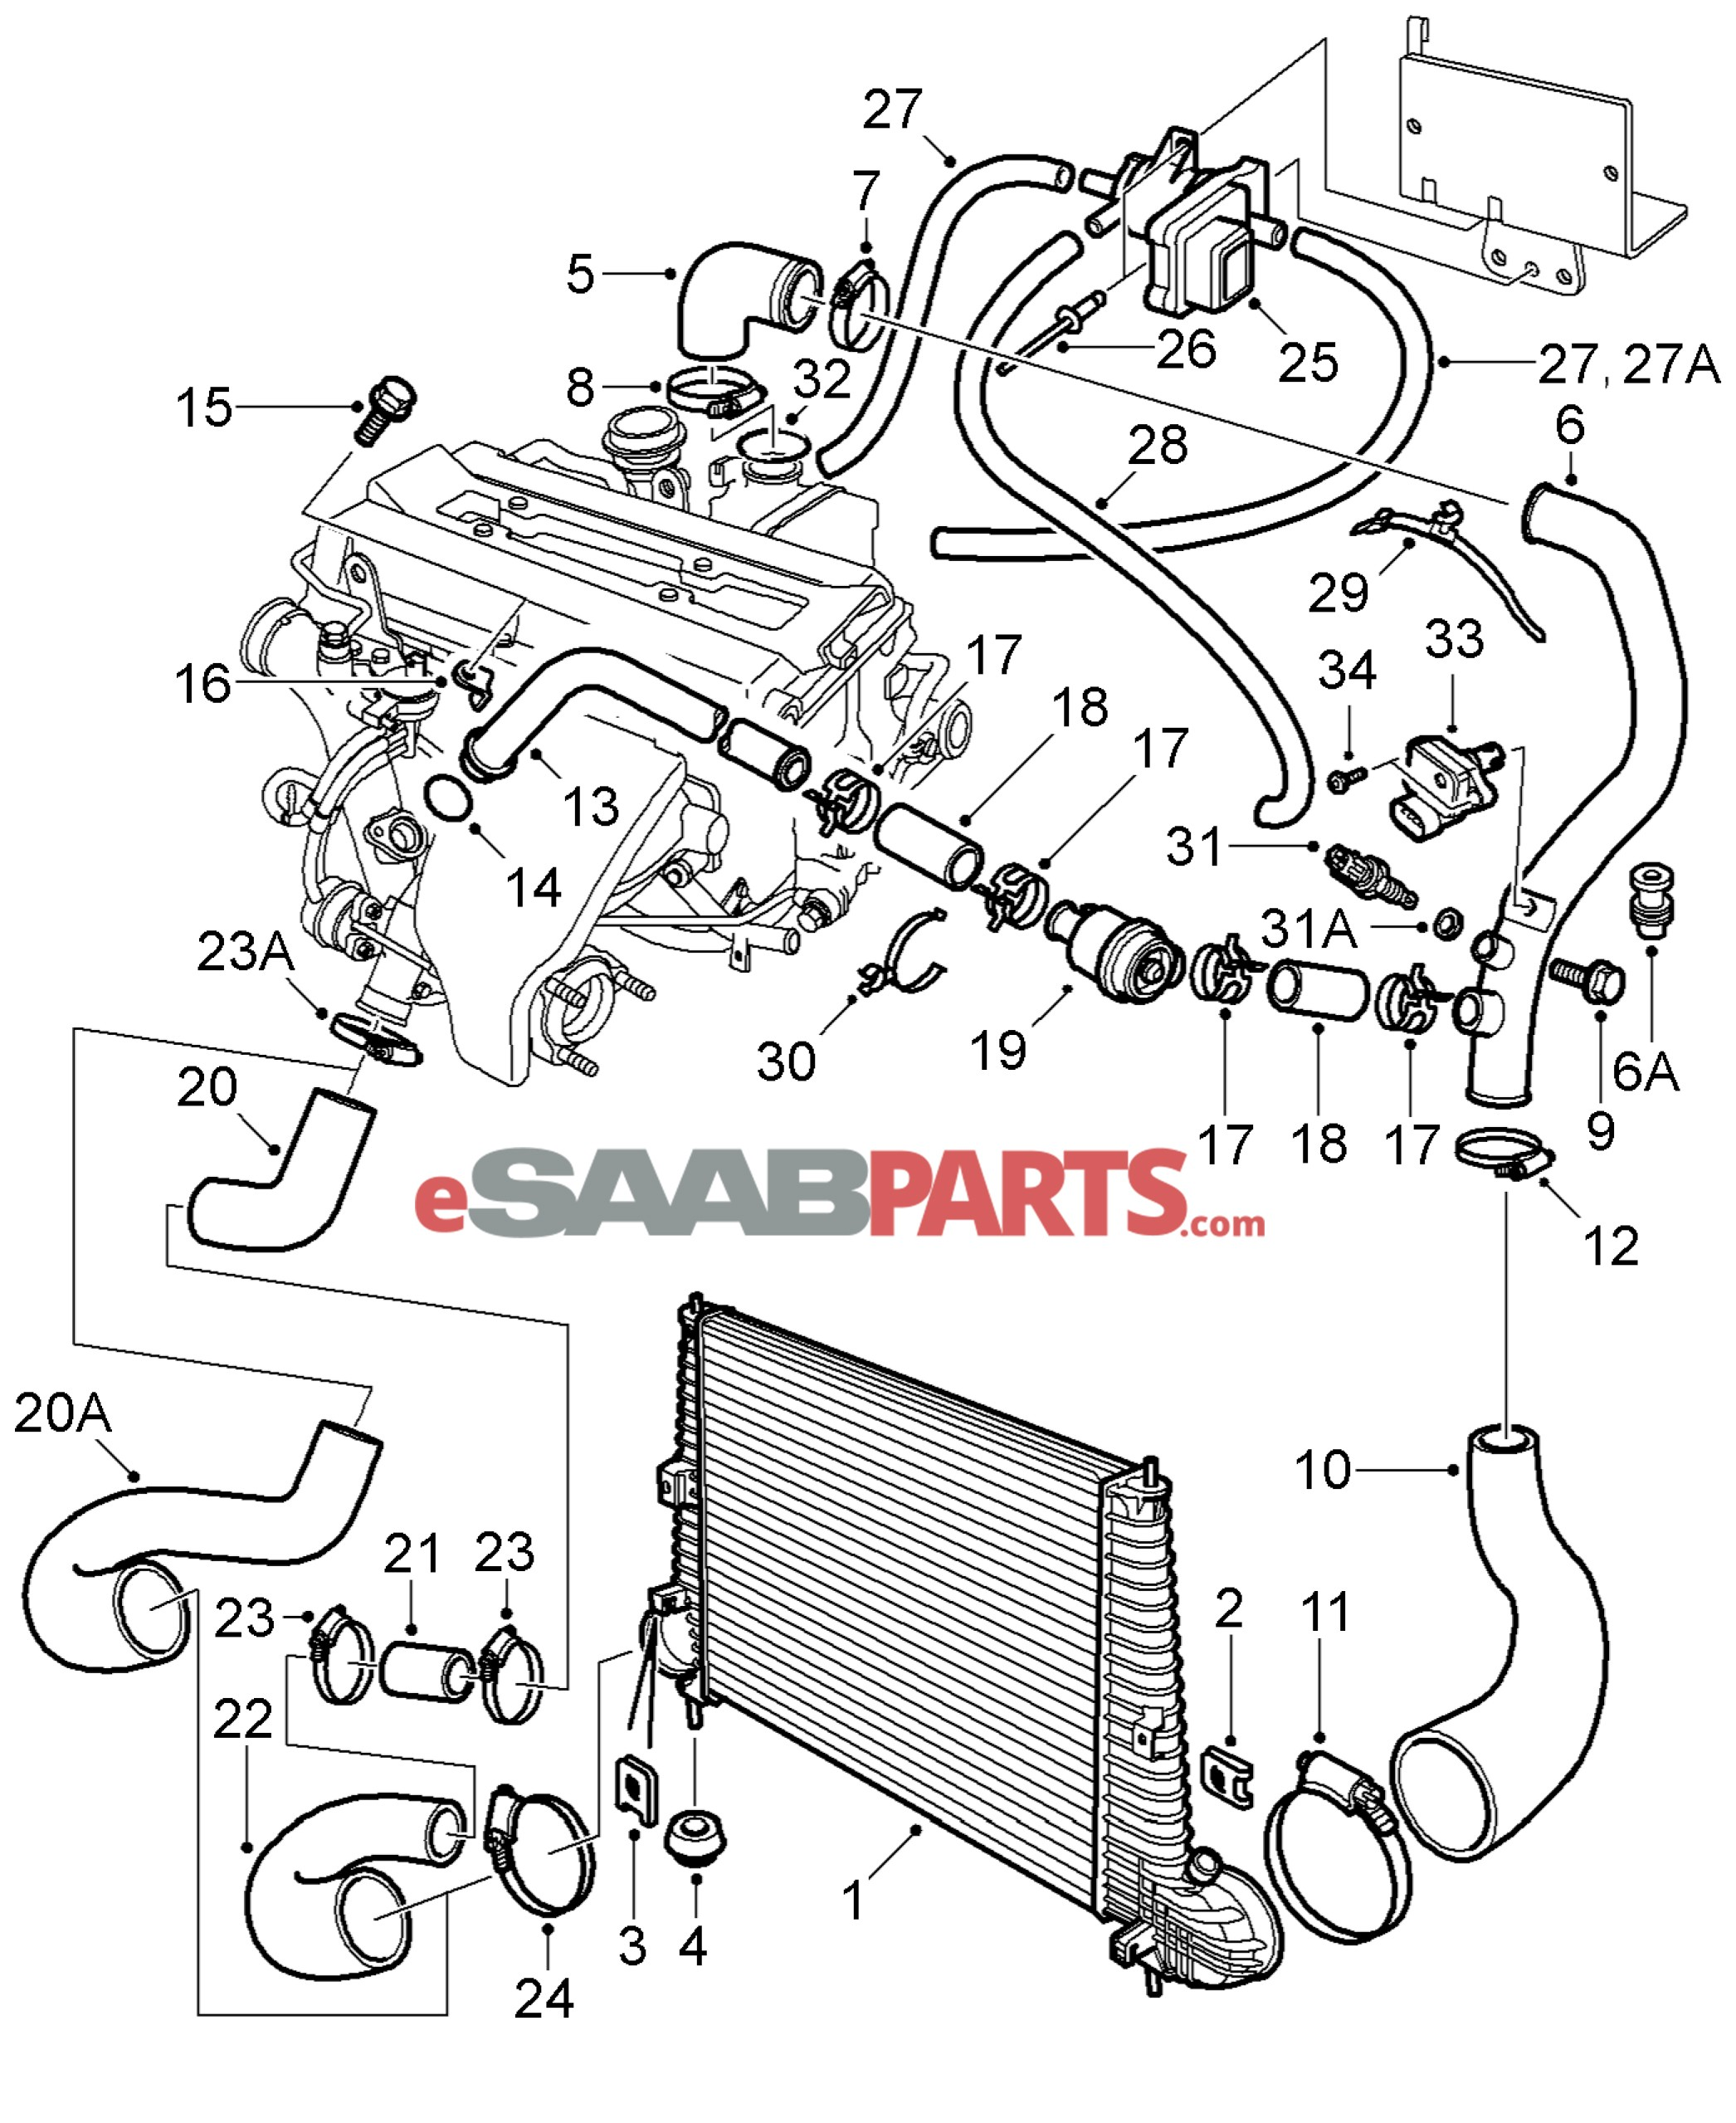 Case Ih 255 Wire Diagram Wiring Diagrams Instructions. Ih 1586 Wiring  Diagram Auto Diagrams Instructions